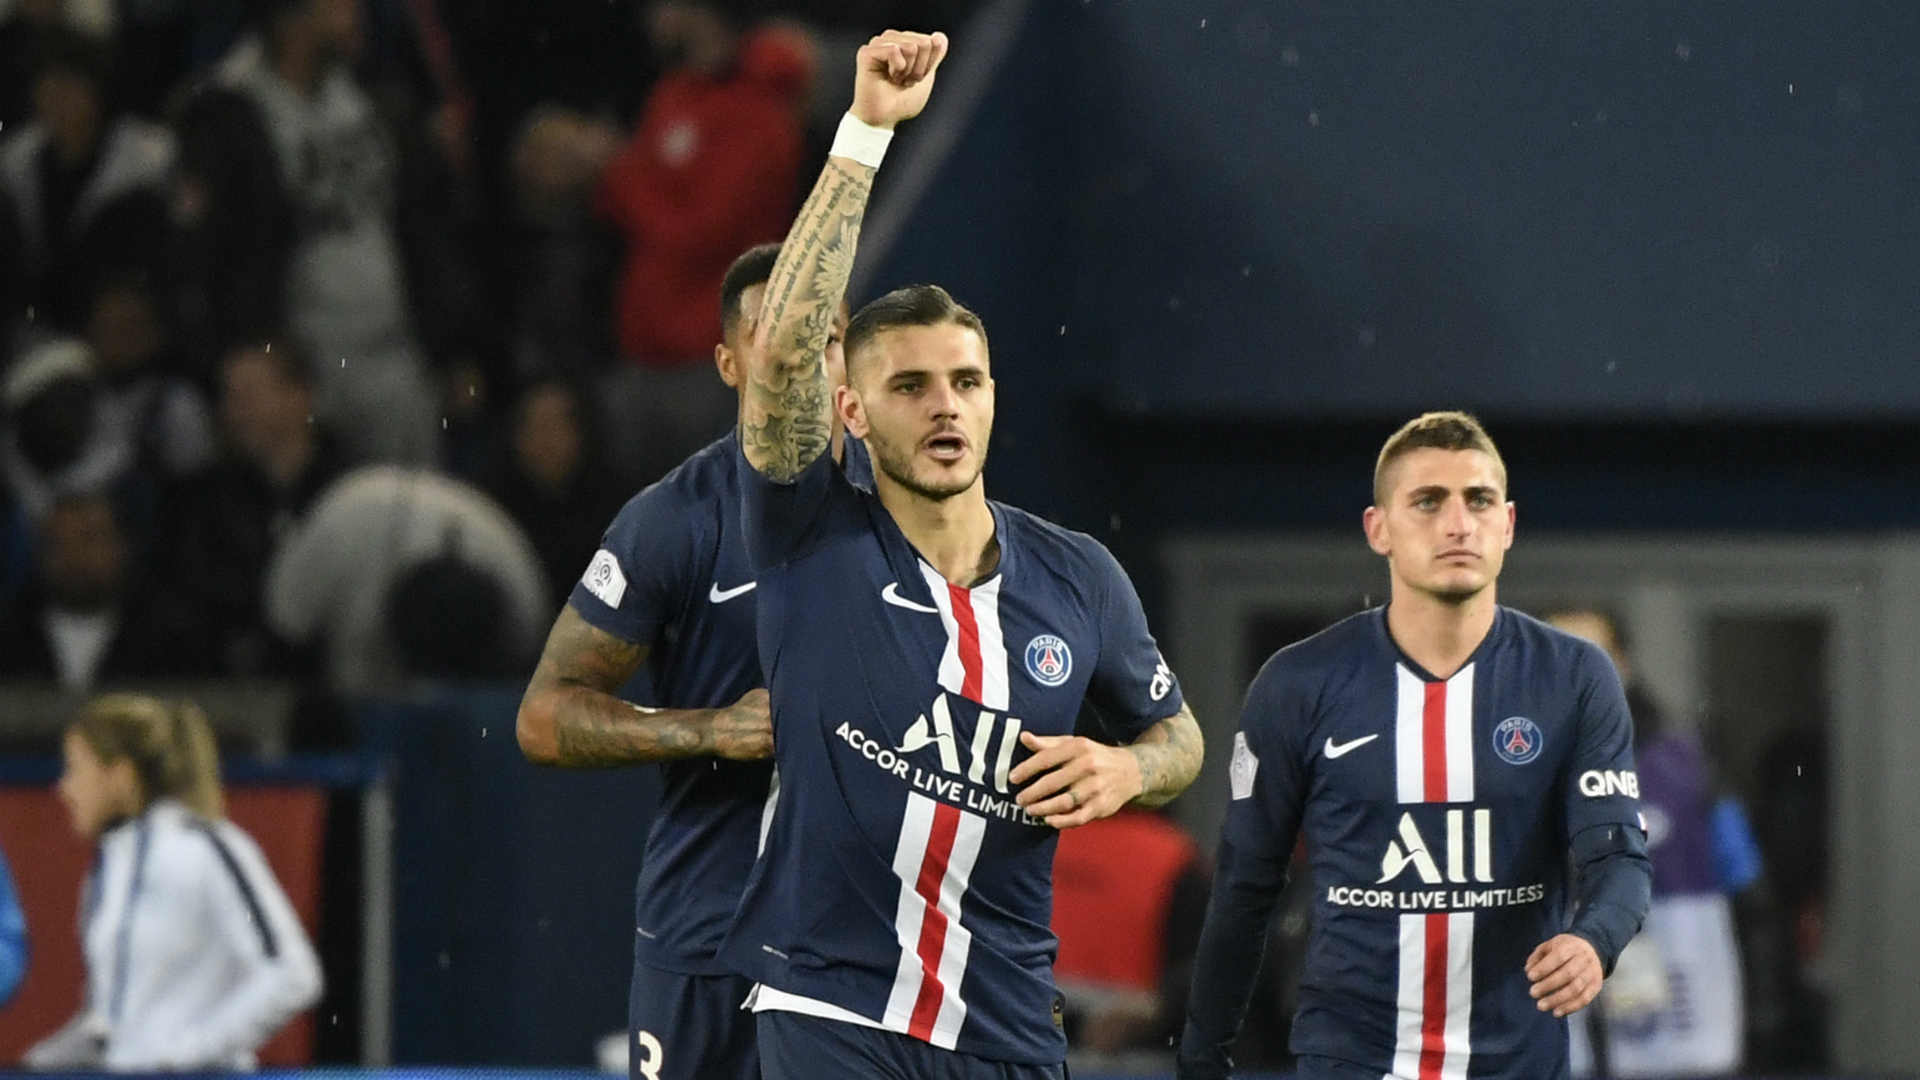 Brest 1-2 Paris Saint-Germain: Substitute Icardi strikes late for Ligue 1 champions